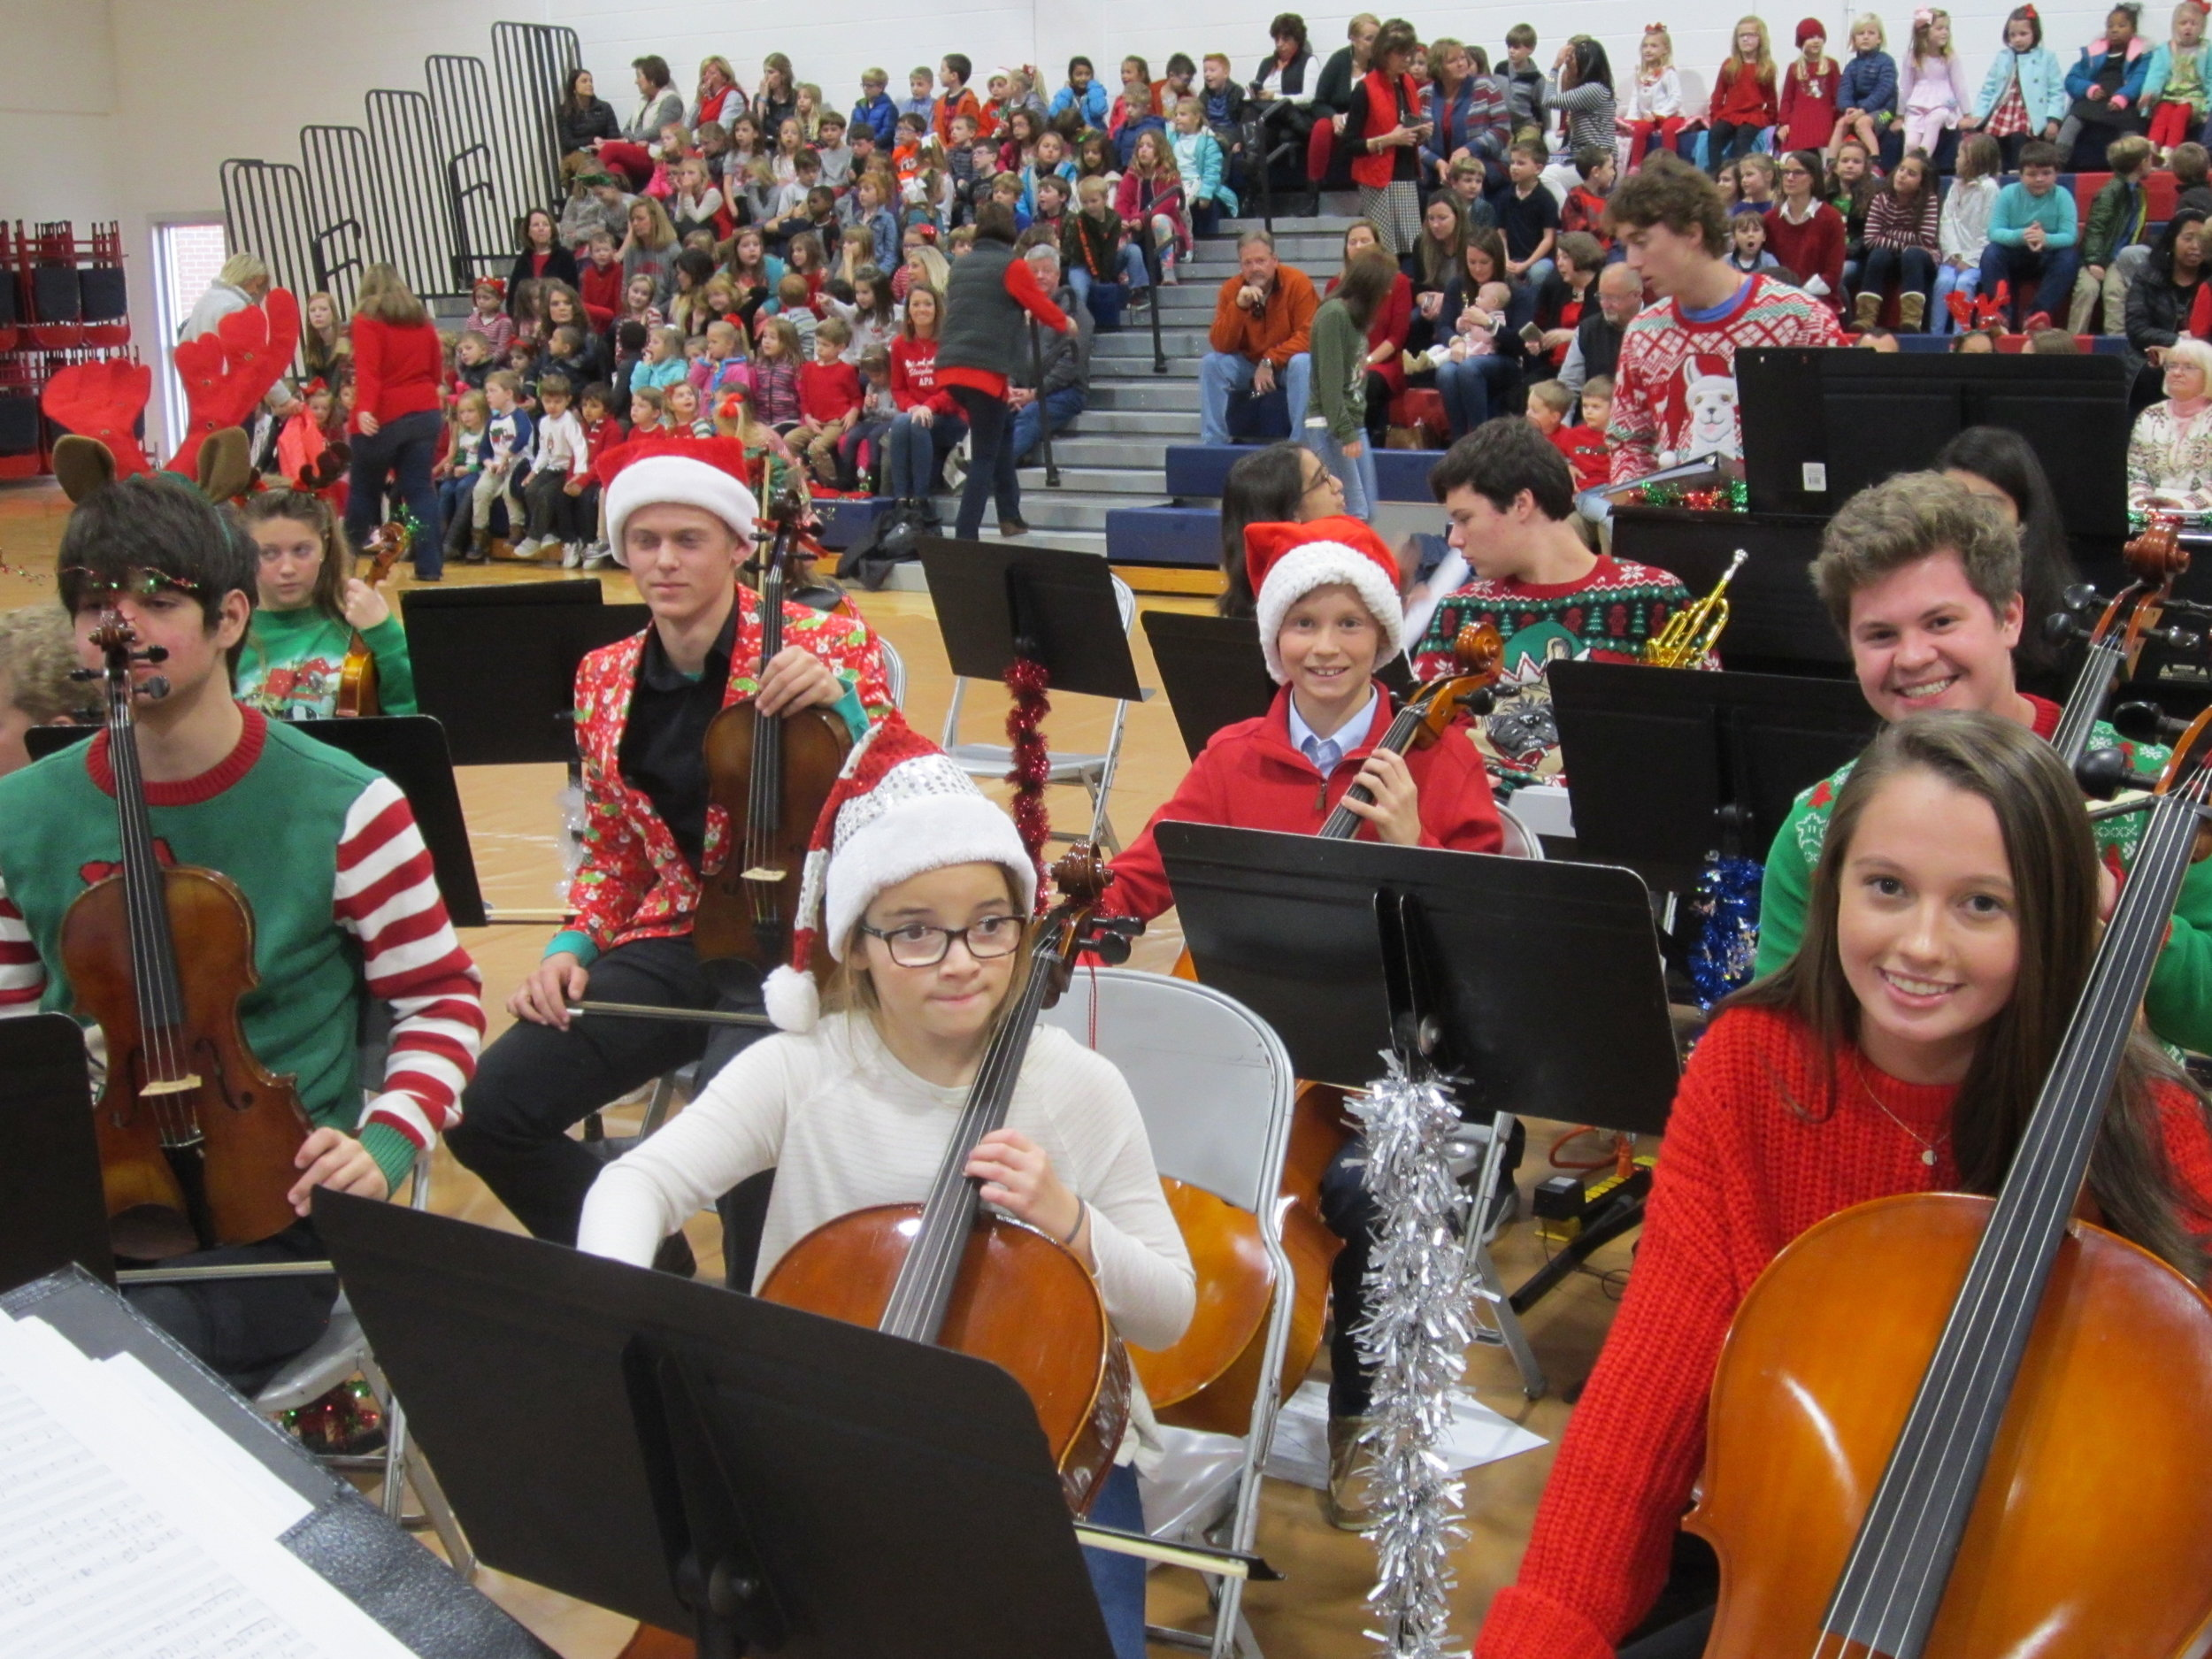 Reindeer antlers and Santa hats jolly up the APA student orchestra for its Holiday Concert performance.